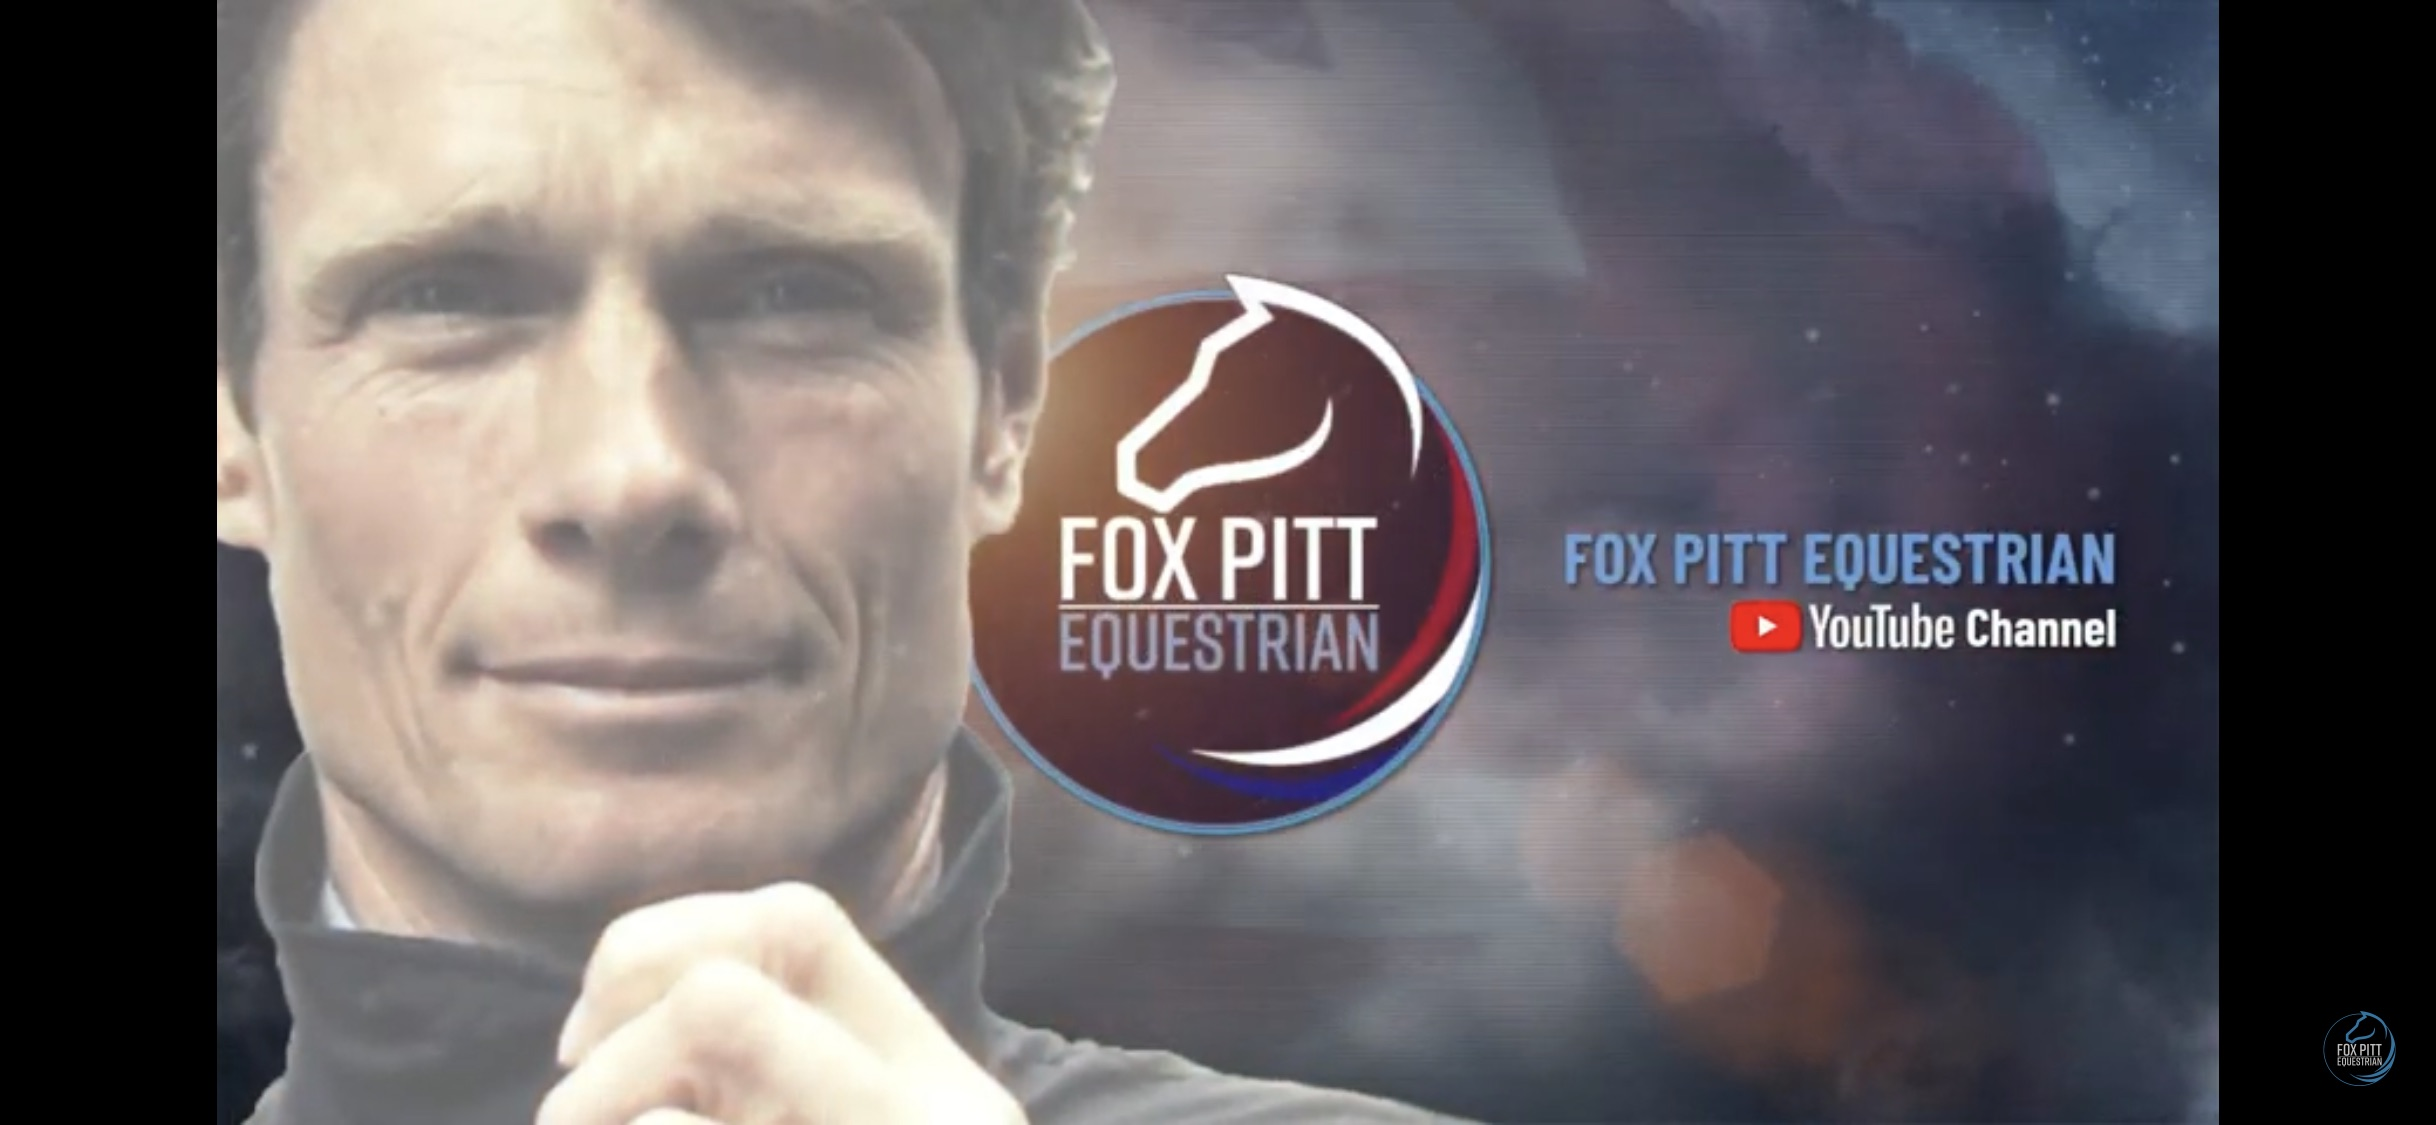 Fox-Pitt Equestrian TV launched